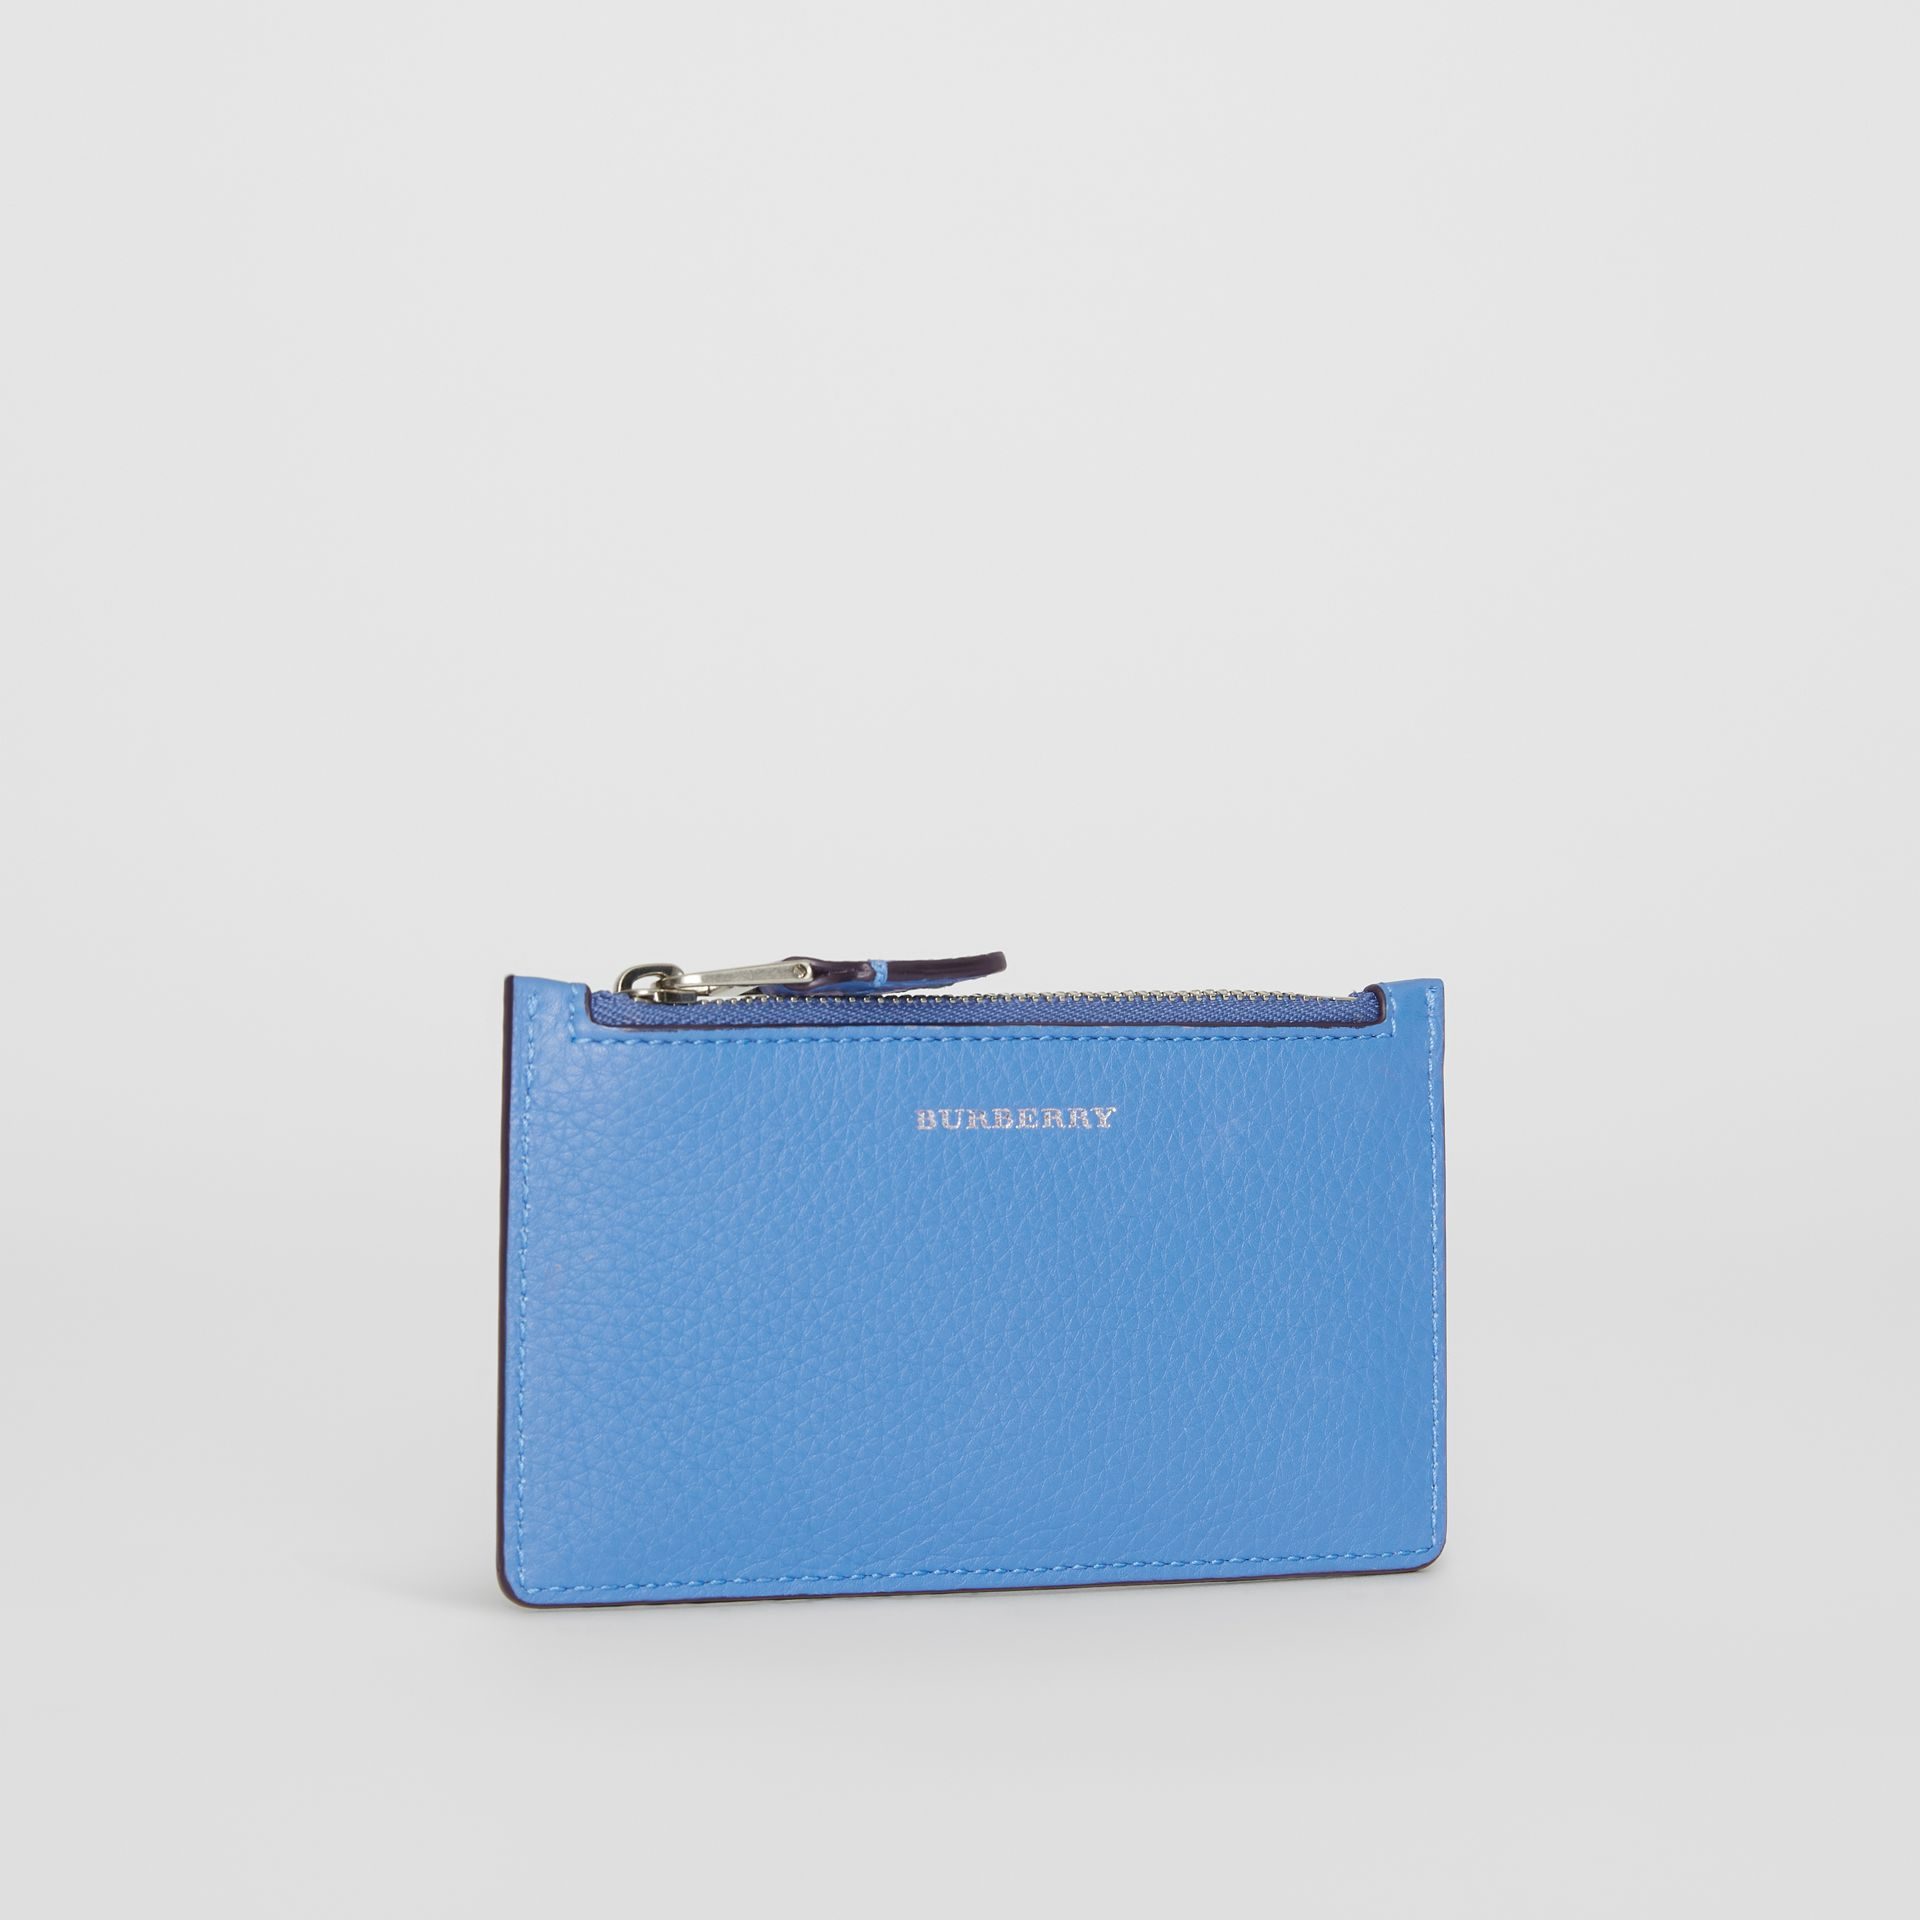 Two-tone Leather Card Case in Hydrangea Blue - Women | Burberry Hong Kong - gallery image 4